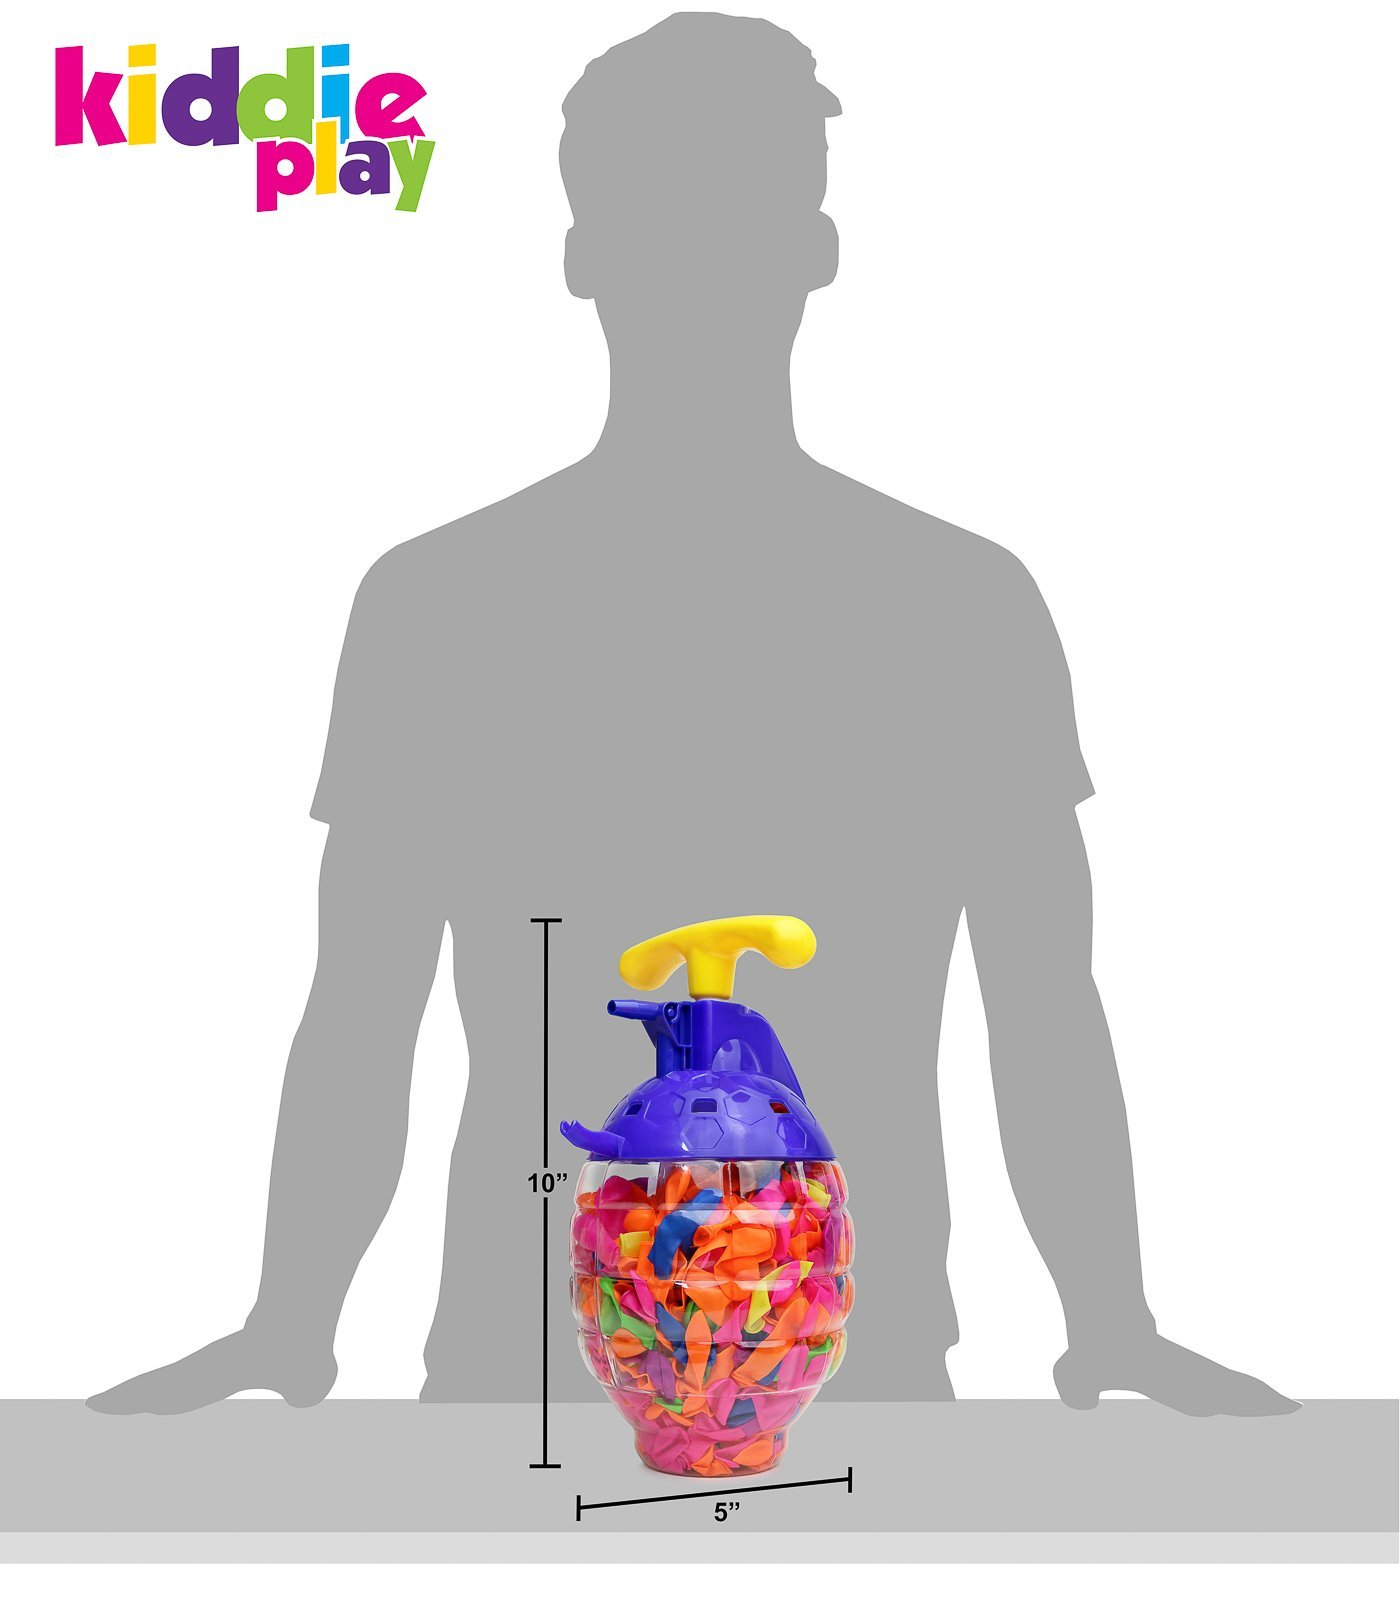 Kiddie Play Water Balloons for Kids with Filler Pump (500 Balloons) by Kiddie Play (Image #4)